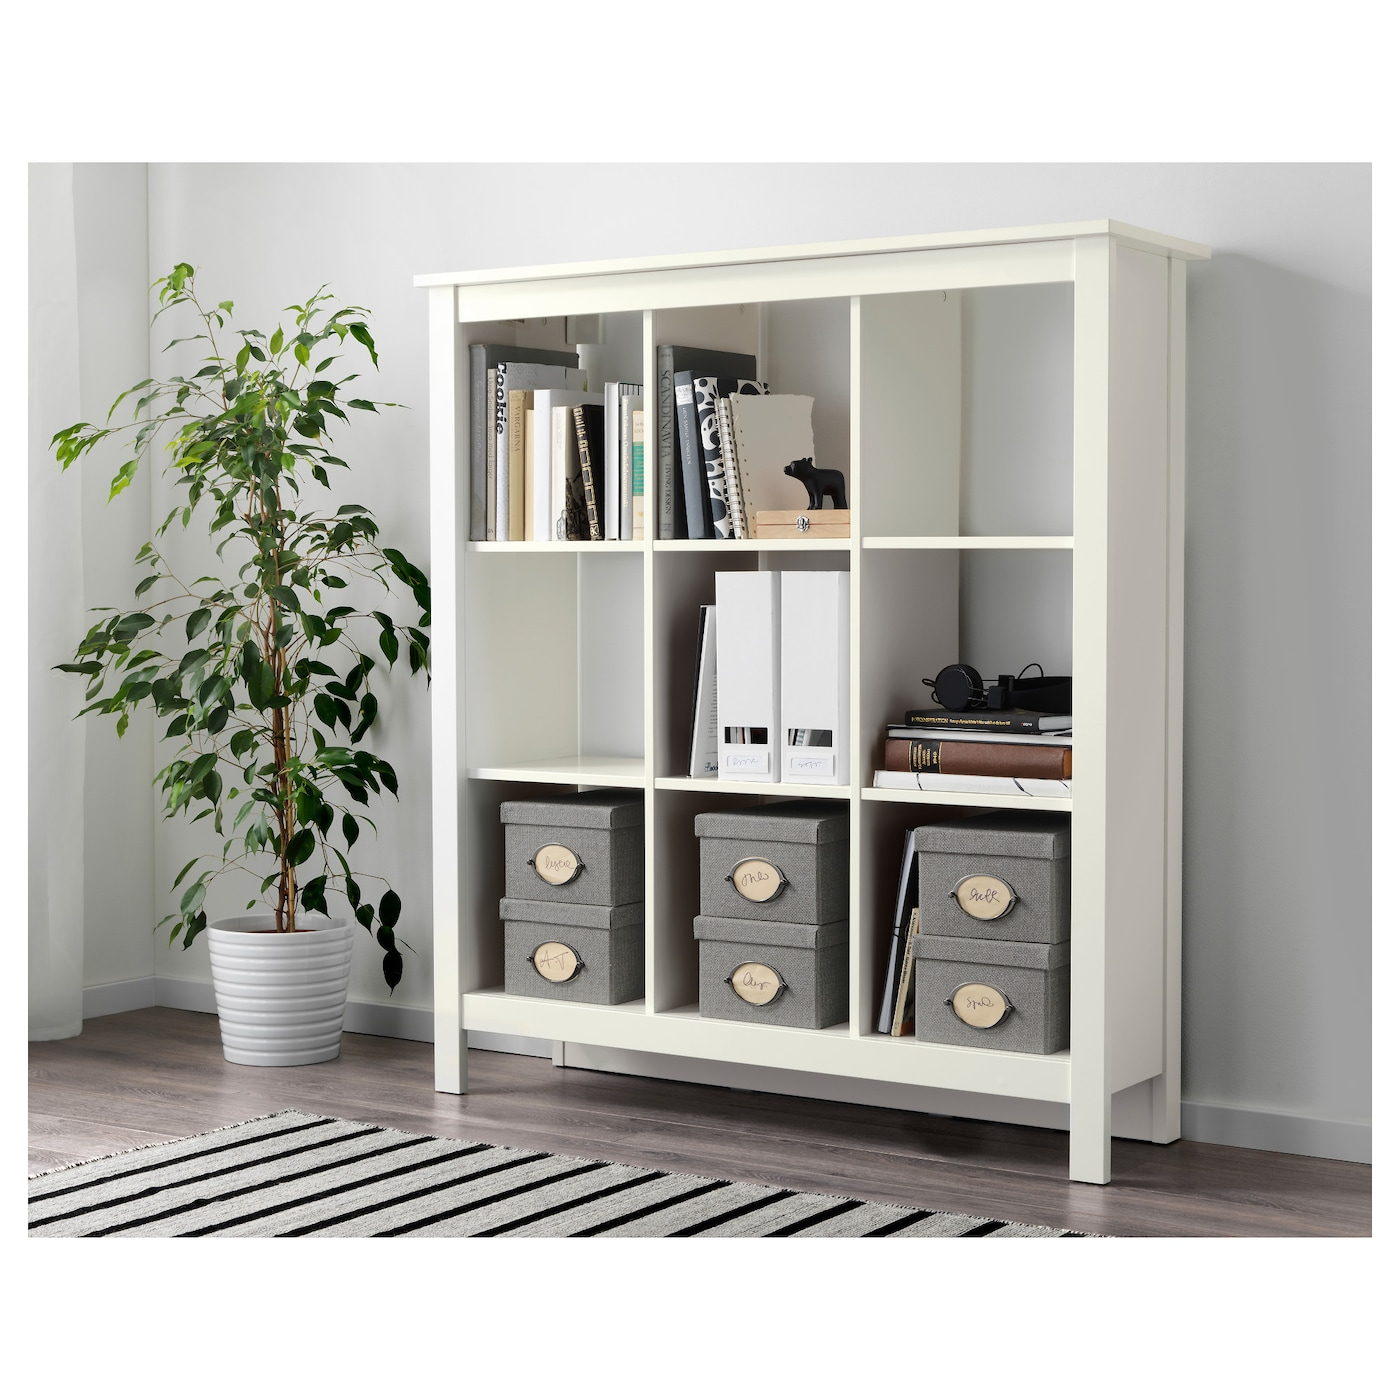 IKEA TOMNÄS shelving unit